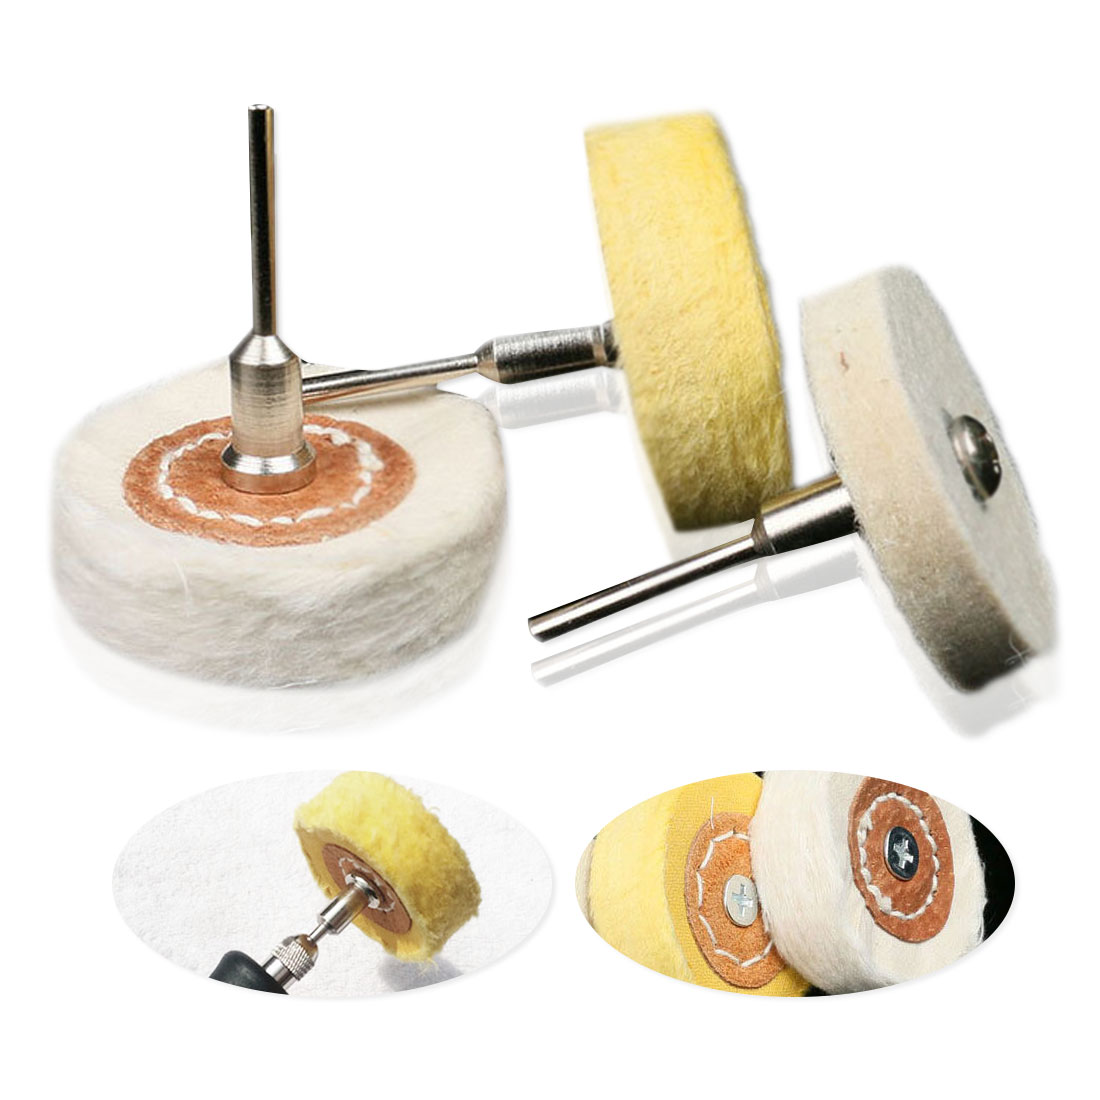 1PC Woodworking Grinder Brushes Polishing Buffing Wheel Grinding Head Dremel Accessories For Wood Abrasive Tools